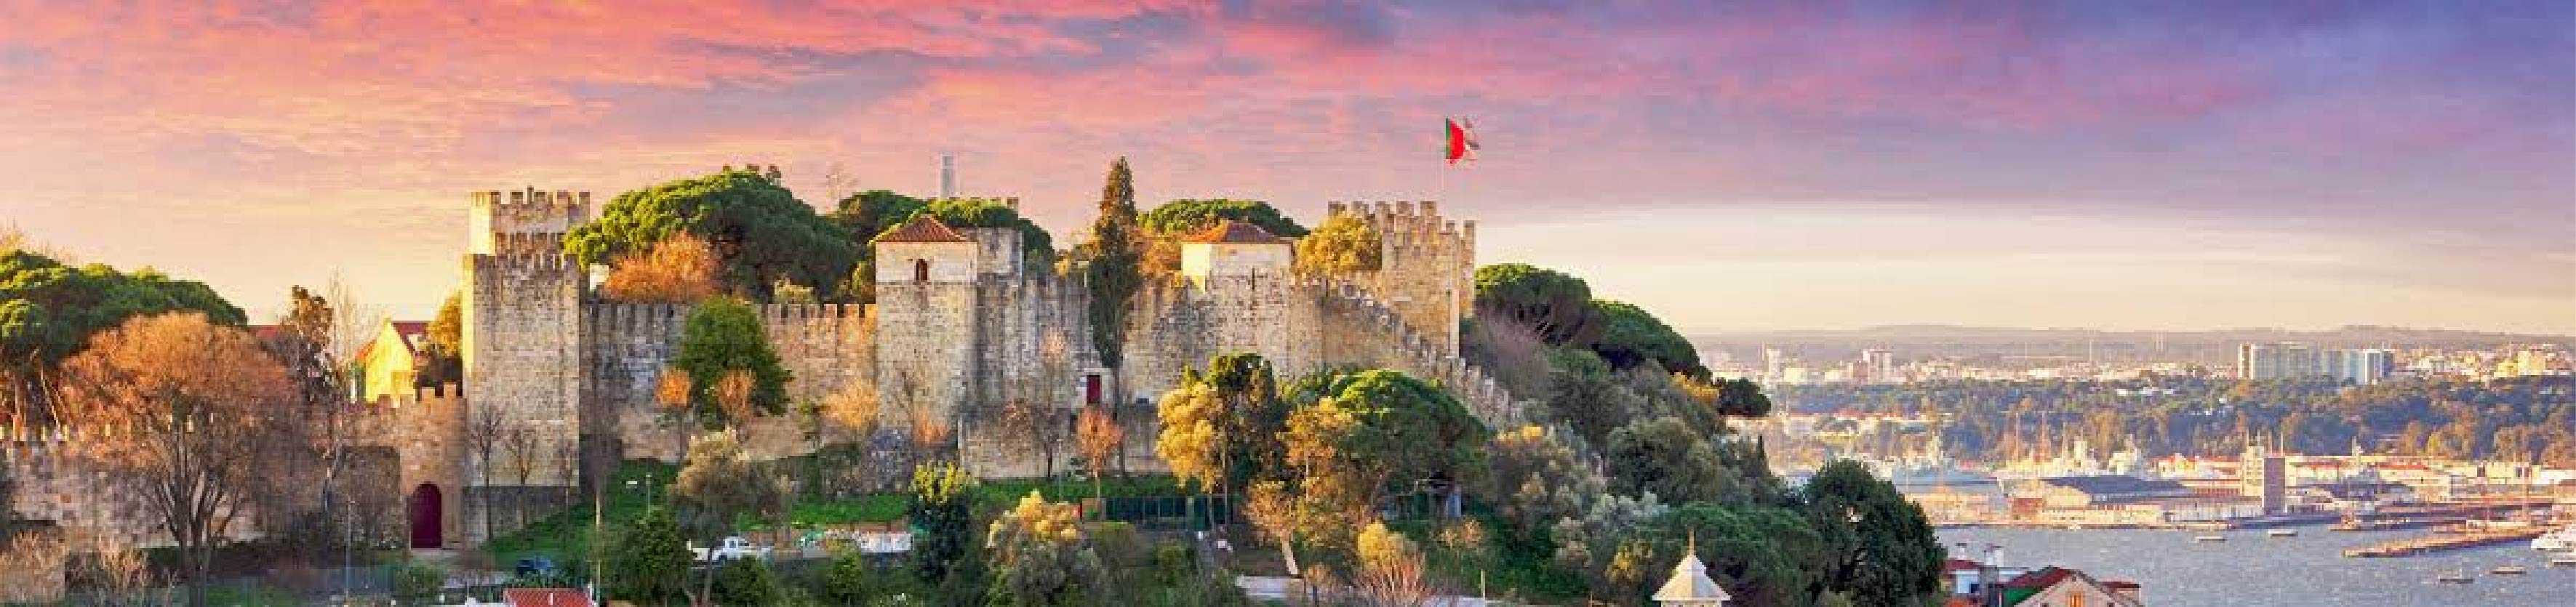 Capital city of Portugal: the enjoyment of tourism in Lisbon Portugal